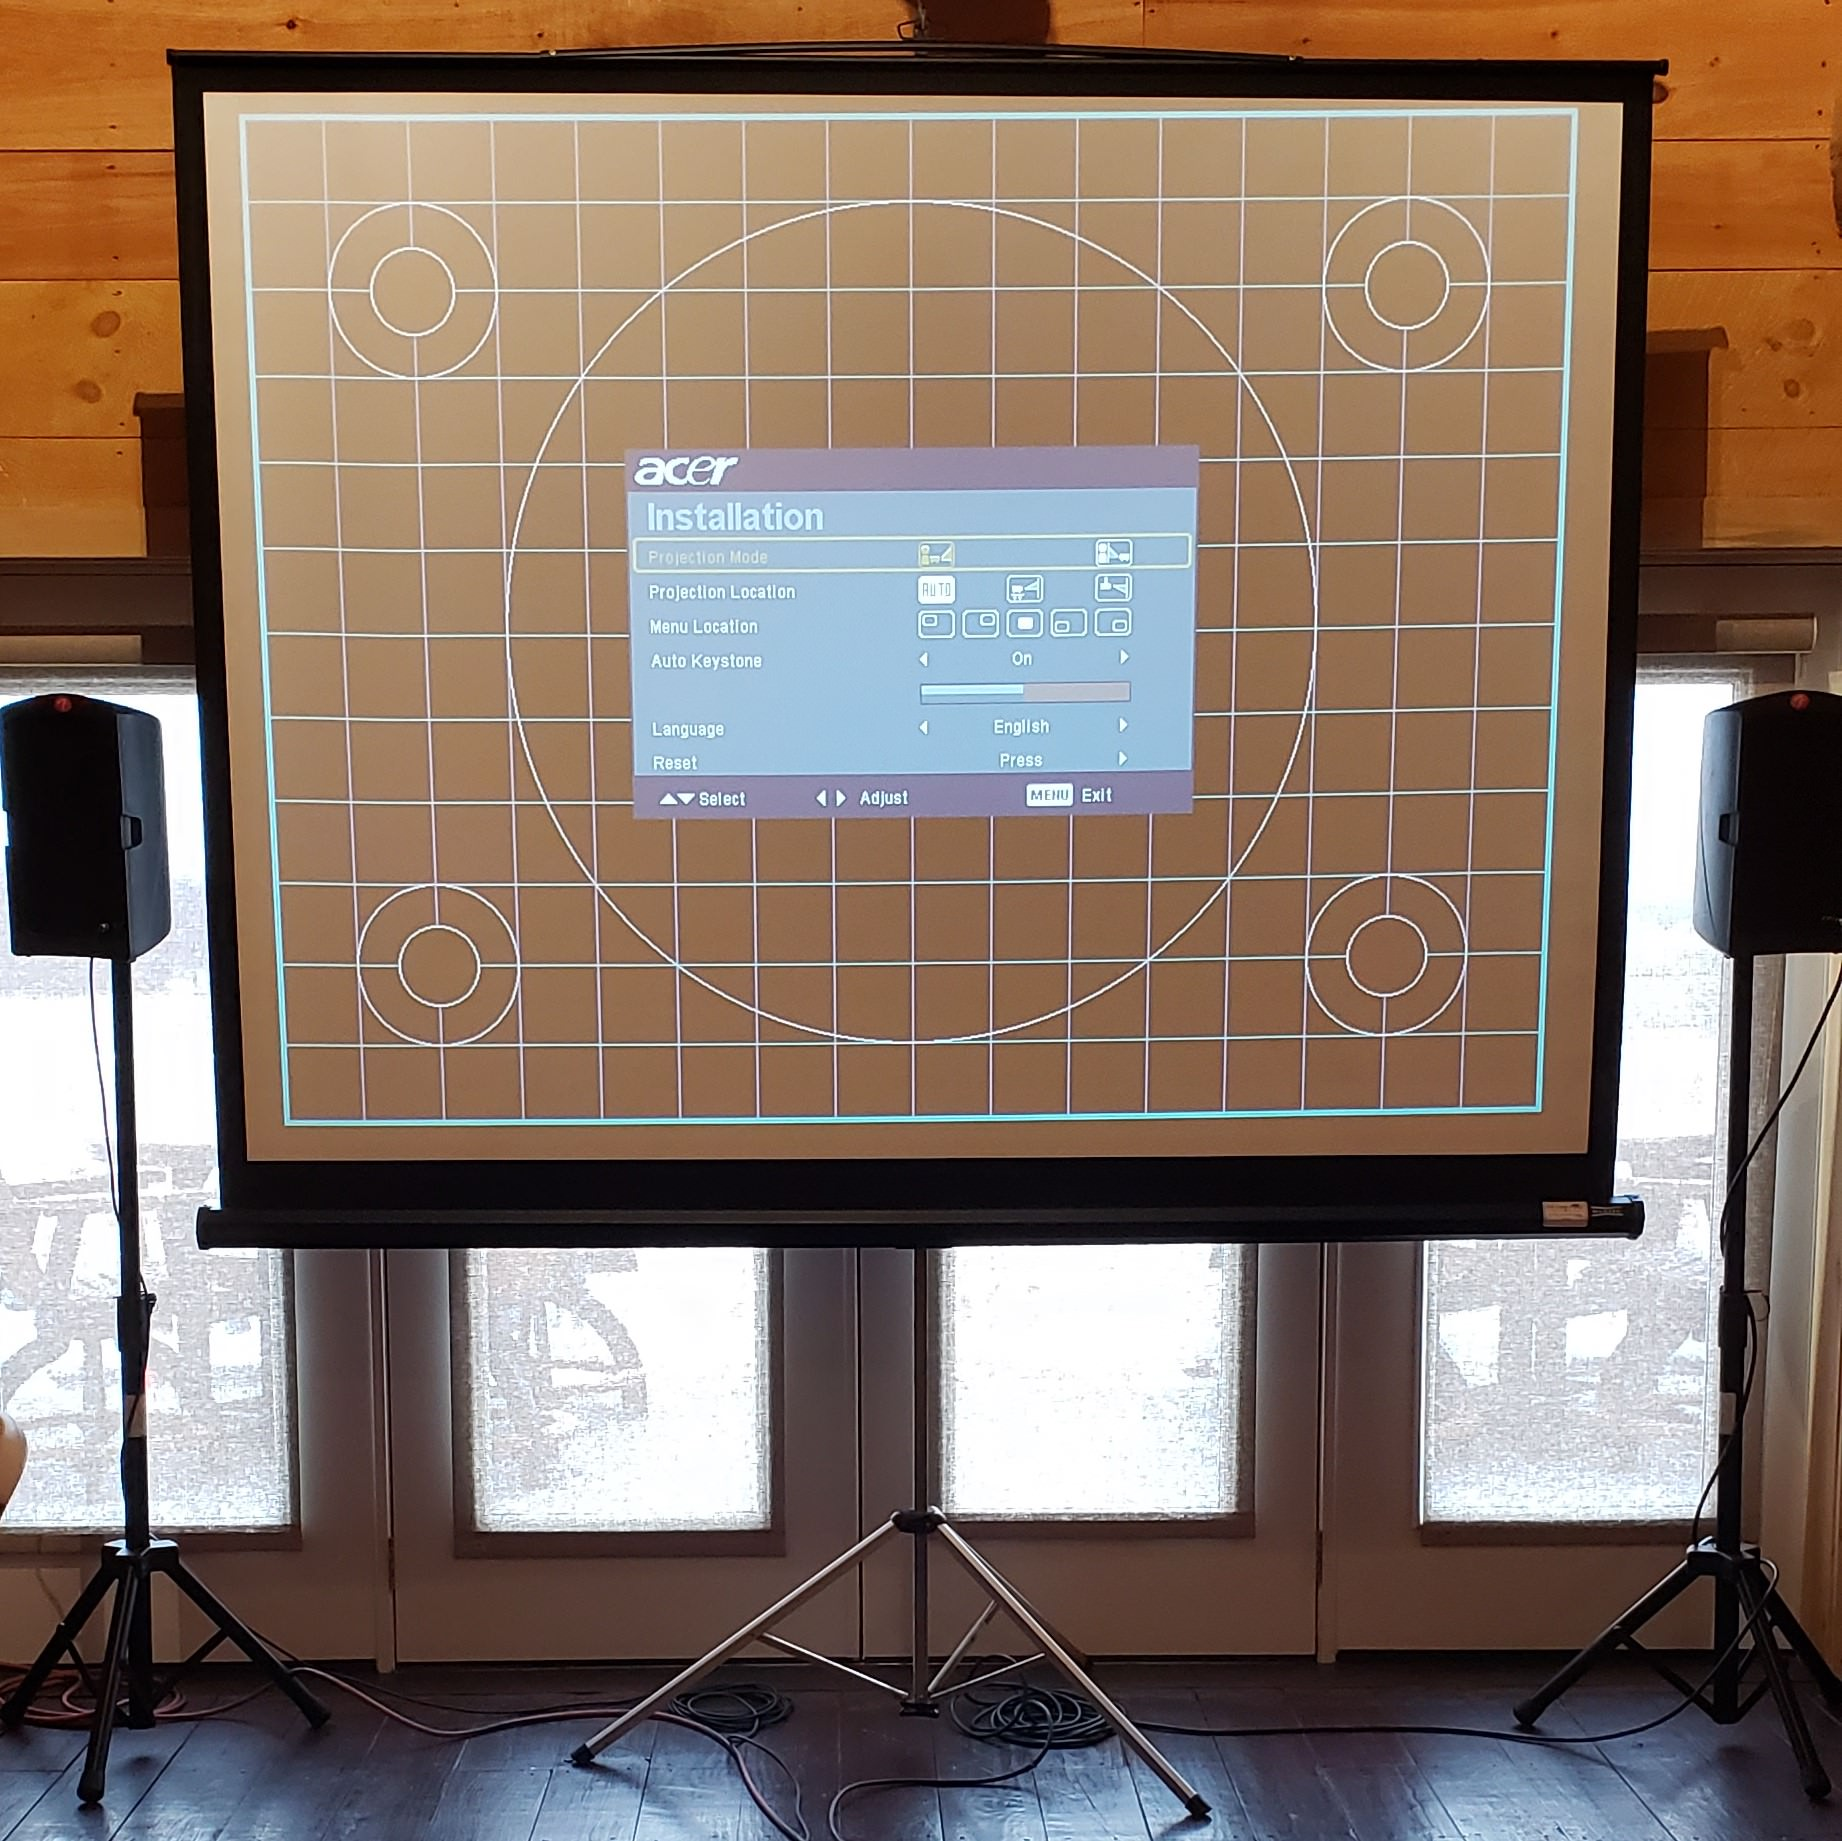 The bottom portion of a projection screen is visible, along with it's tripod in front of a burgundy background..